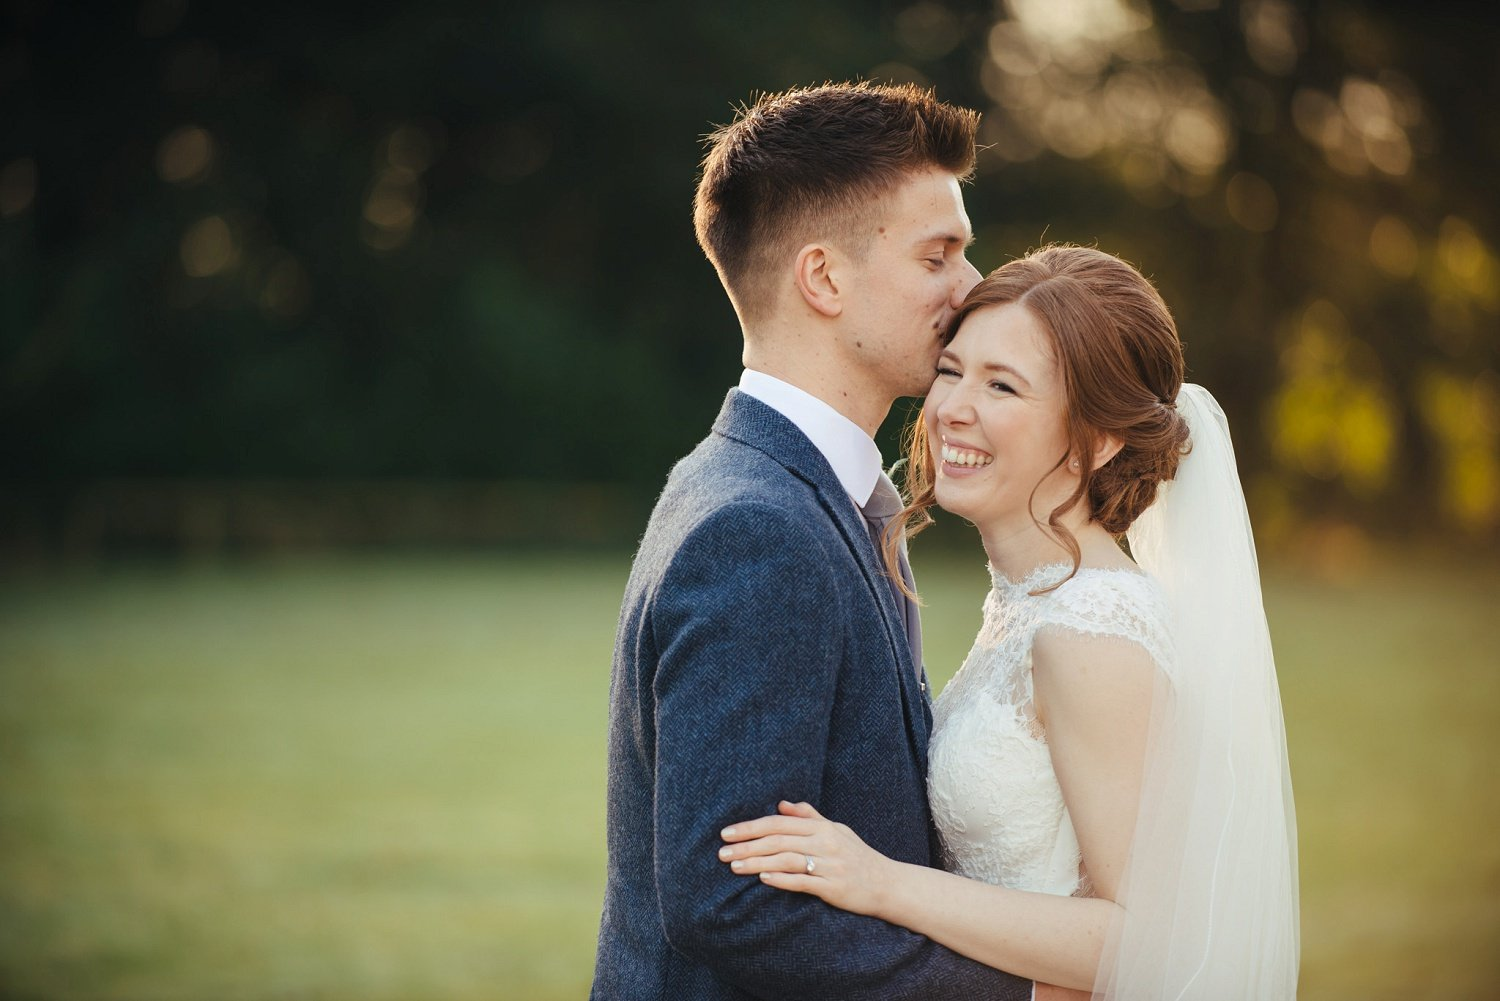 Sweet moment between a bride and gr oom at a barn wedding venue in Herefordshire